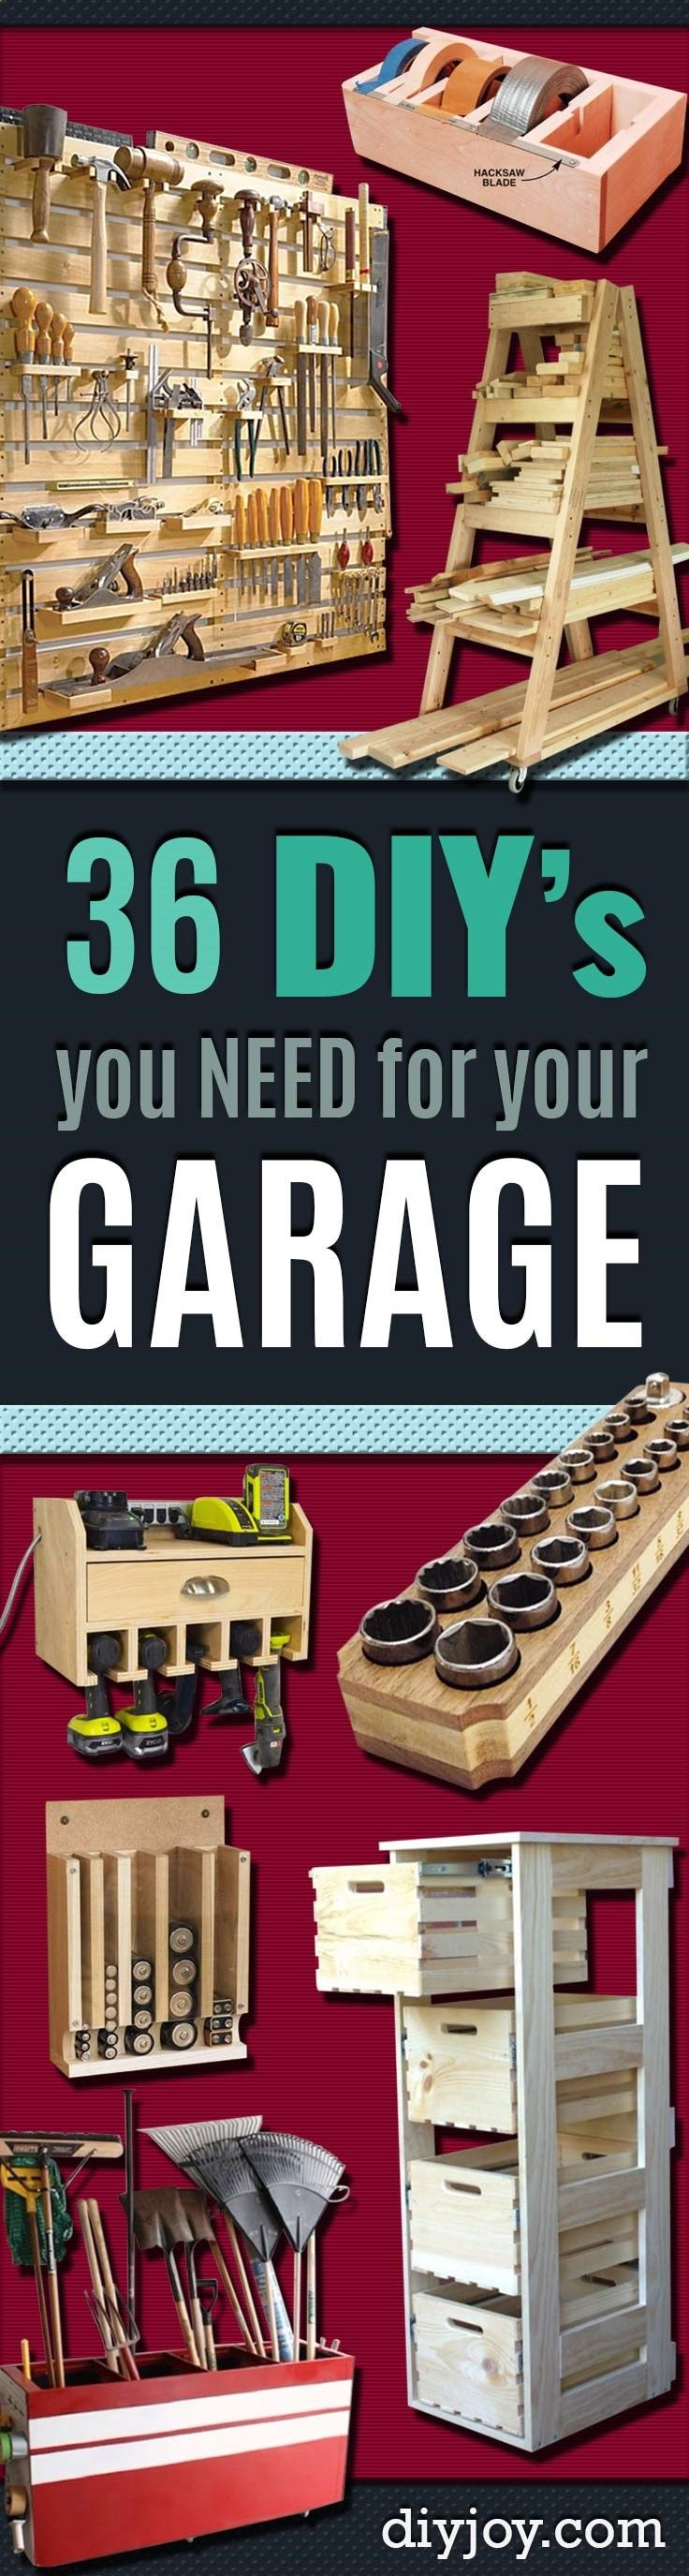 Diy projects your garage needs do it yourself garage makeover ideas diy projects your garage needs do it yourself garage makeover ideas include storage organization solutioingenieria Gallery